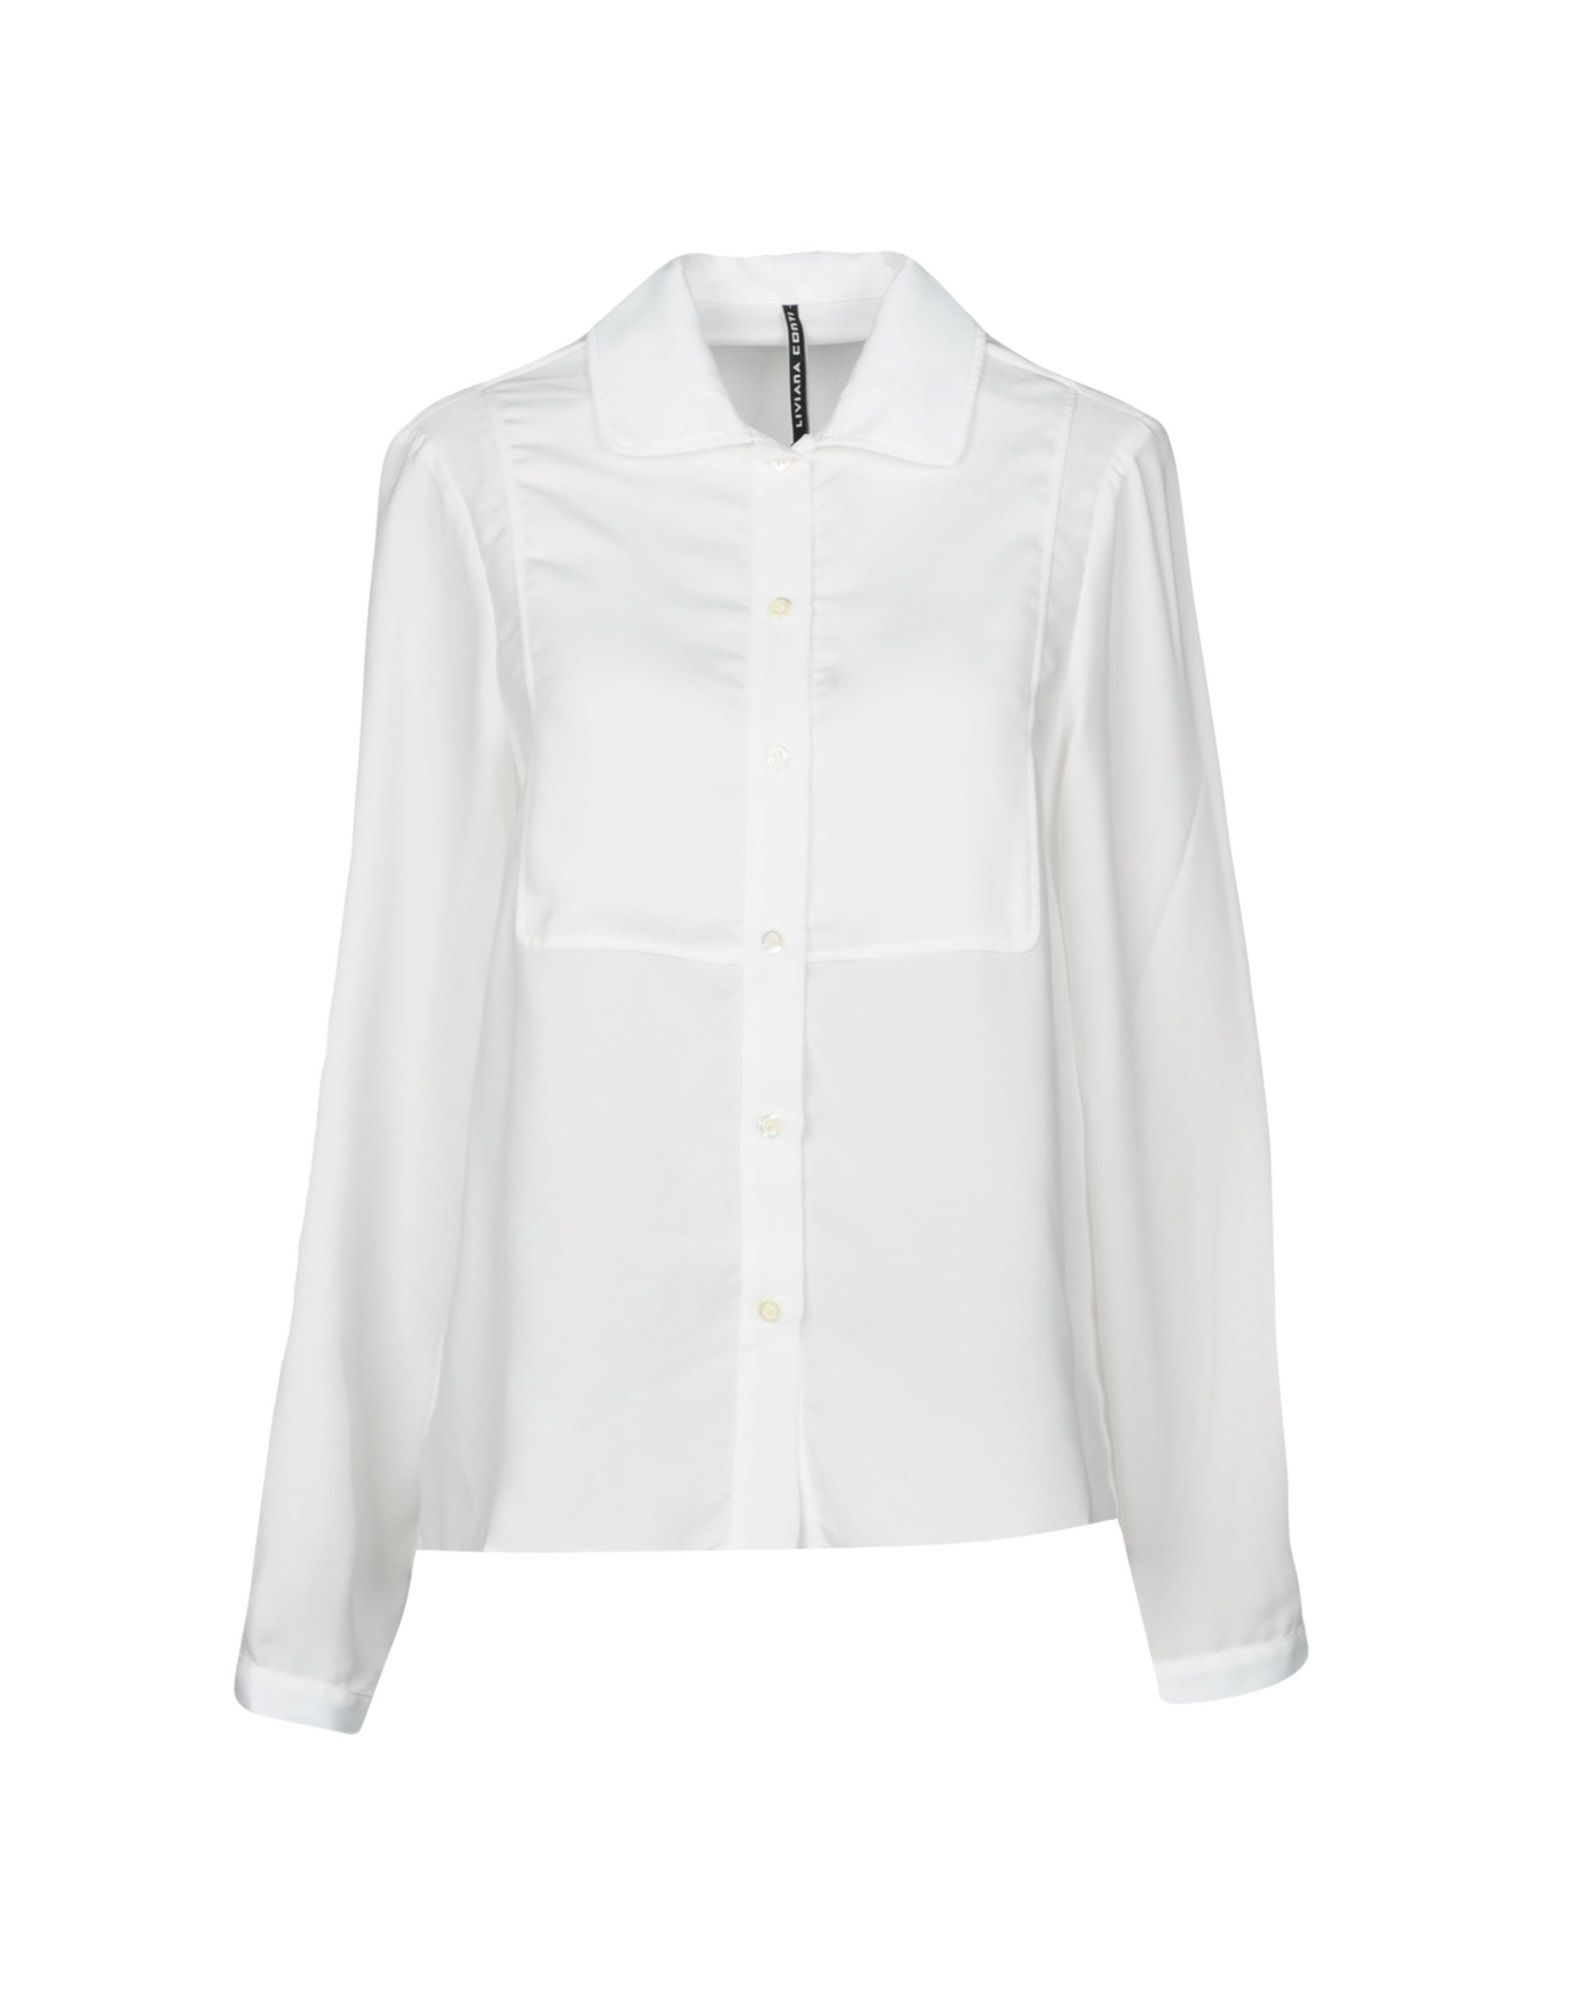 LIVIANA CONTI Solid Color Shirts & Blouses in White